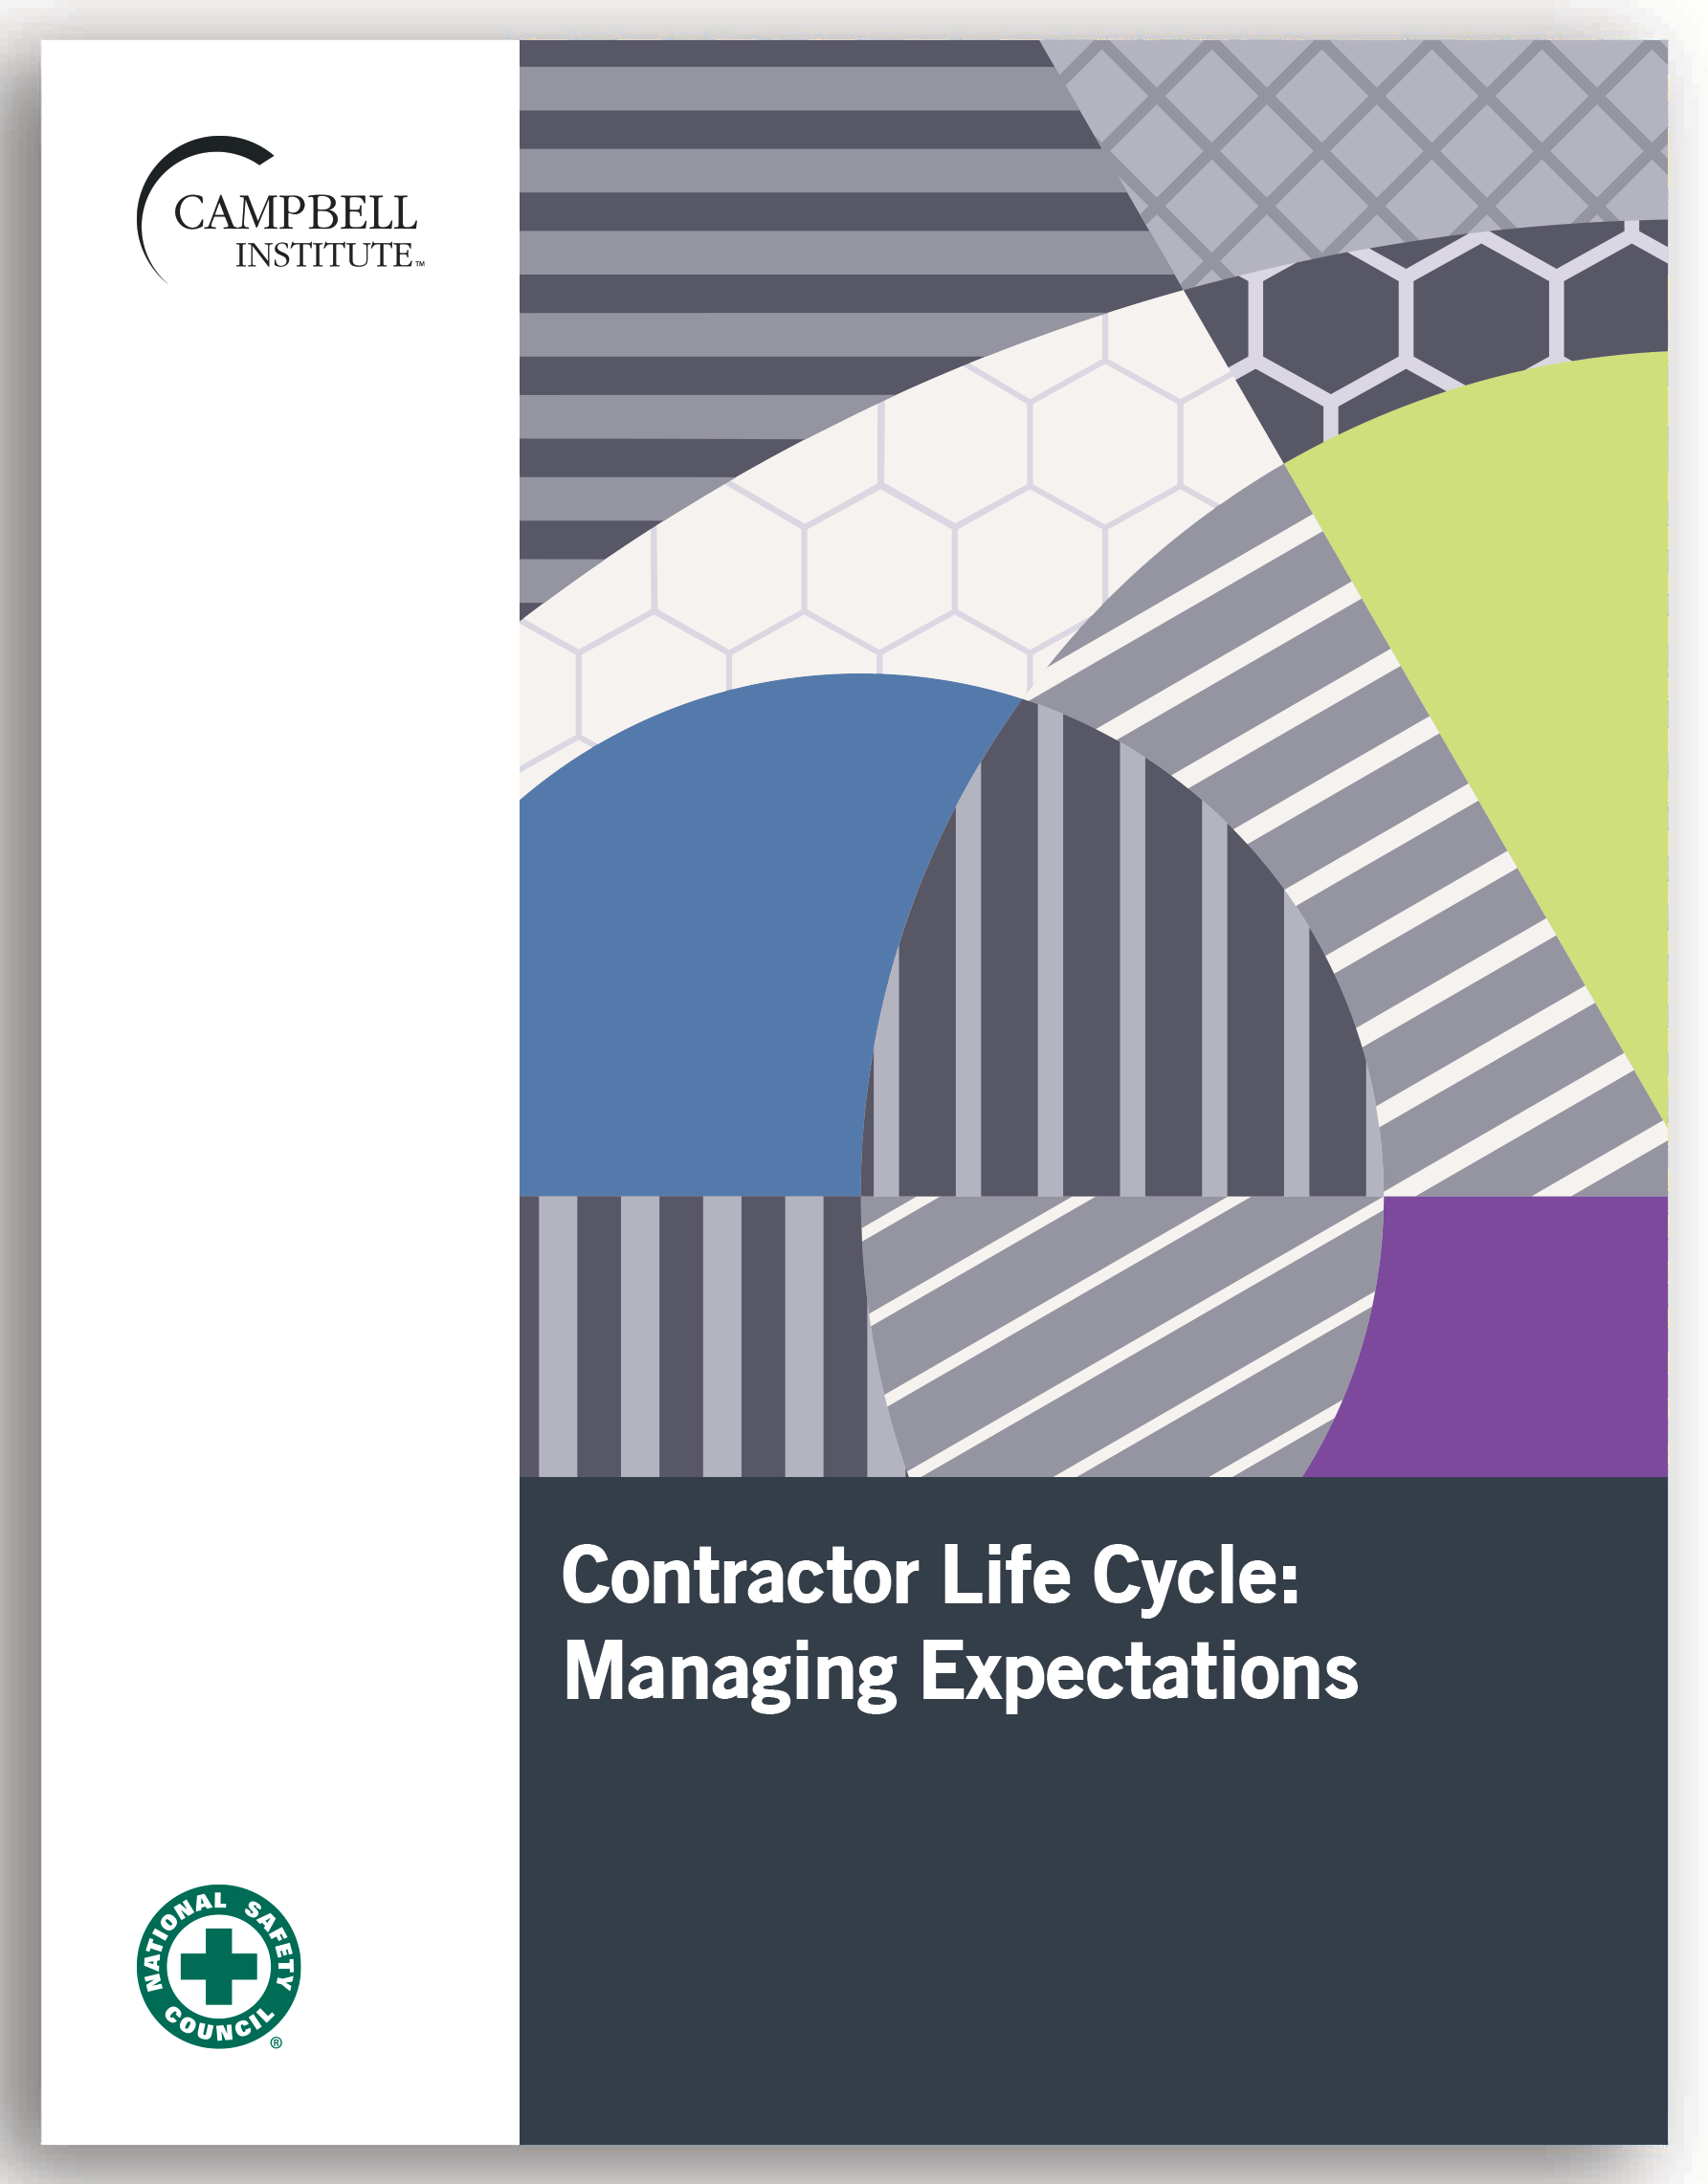 Contractor Life Cycle: Managing Expectations